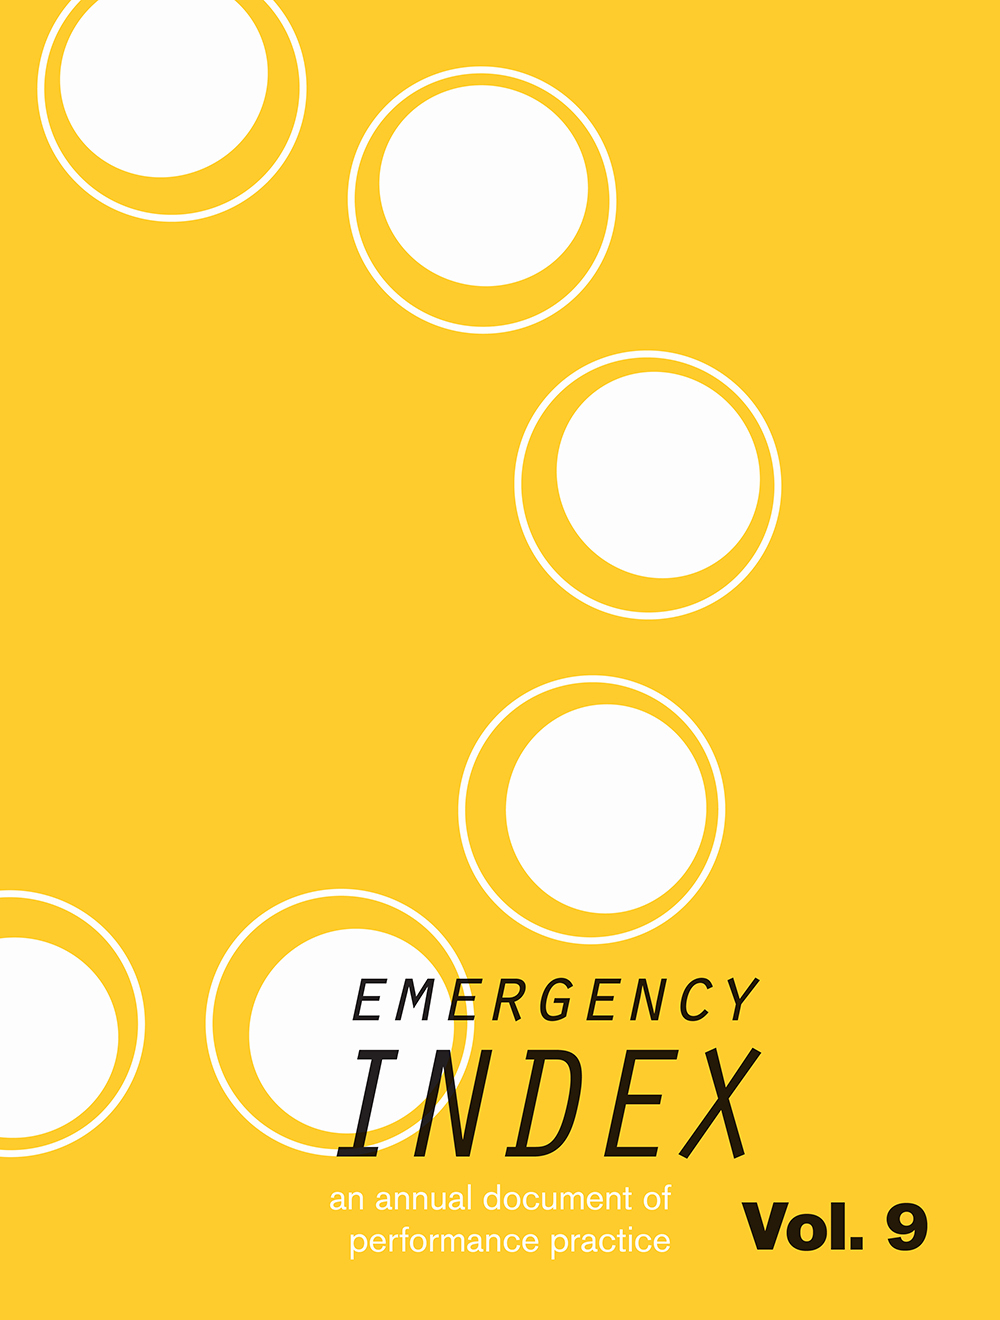 Emergency INDEX, Vol. 9